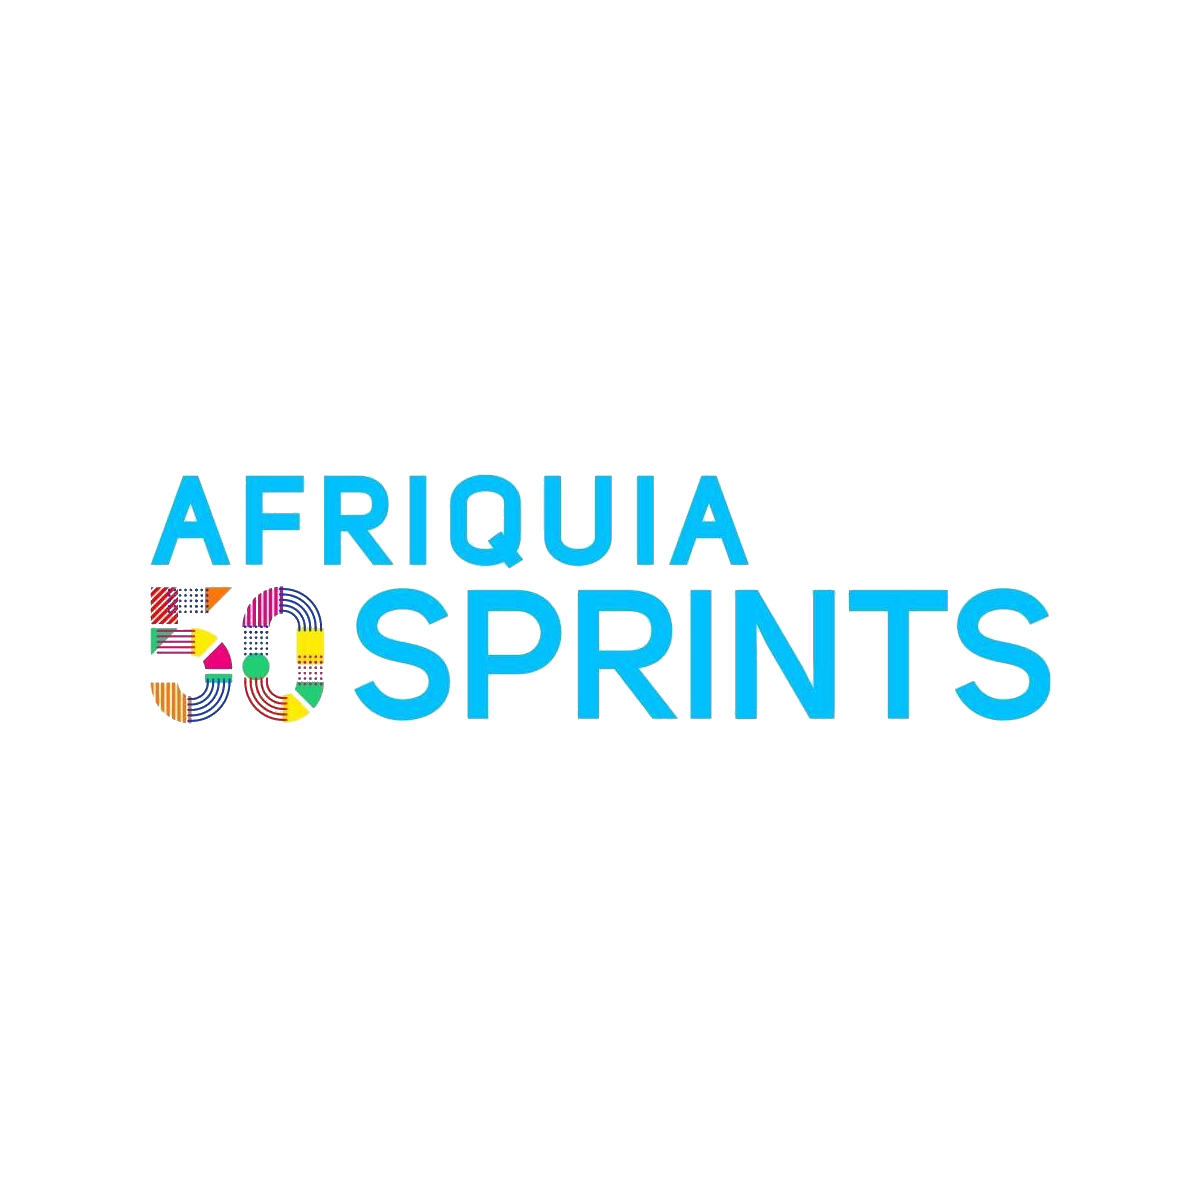 Afriquia 50 sprints-start-up.ma